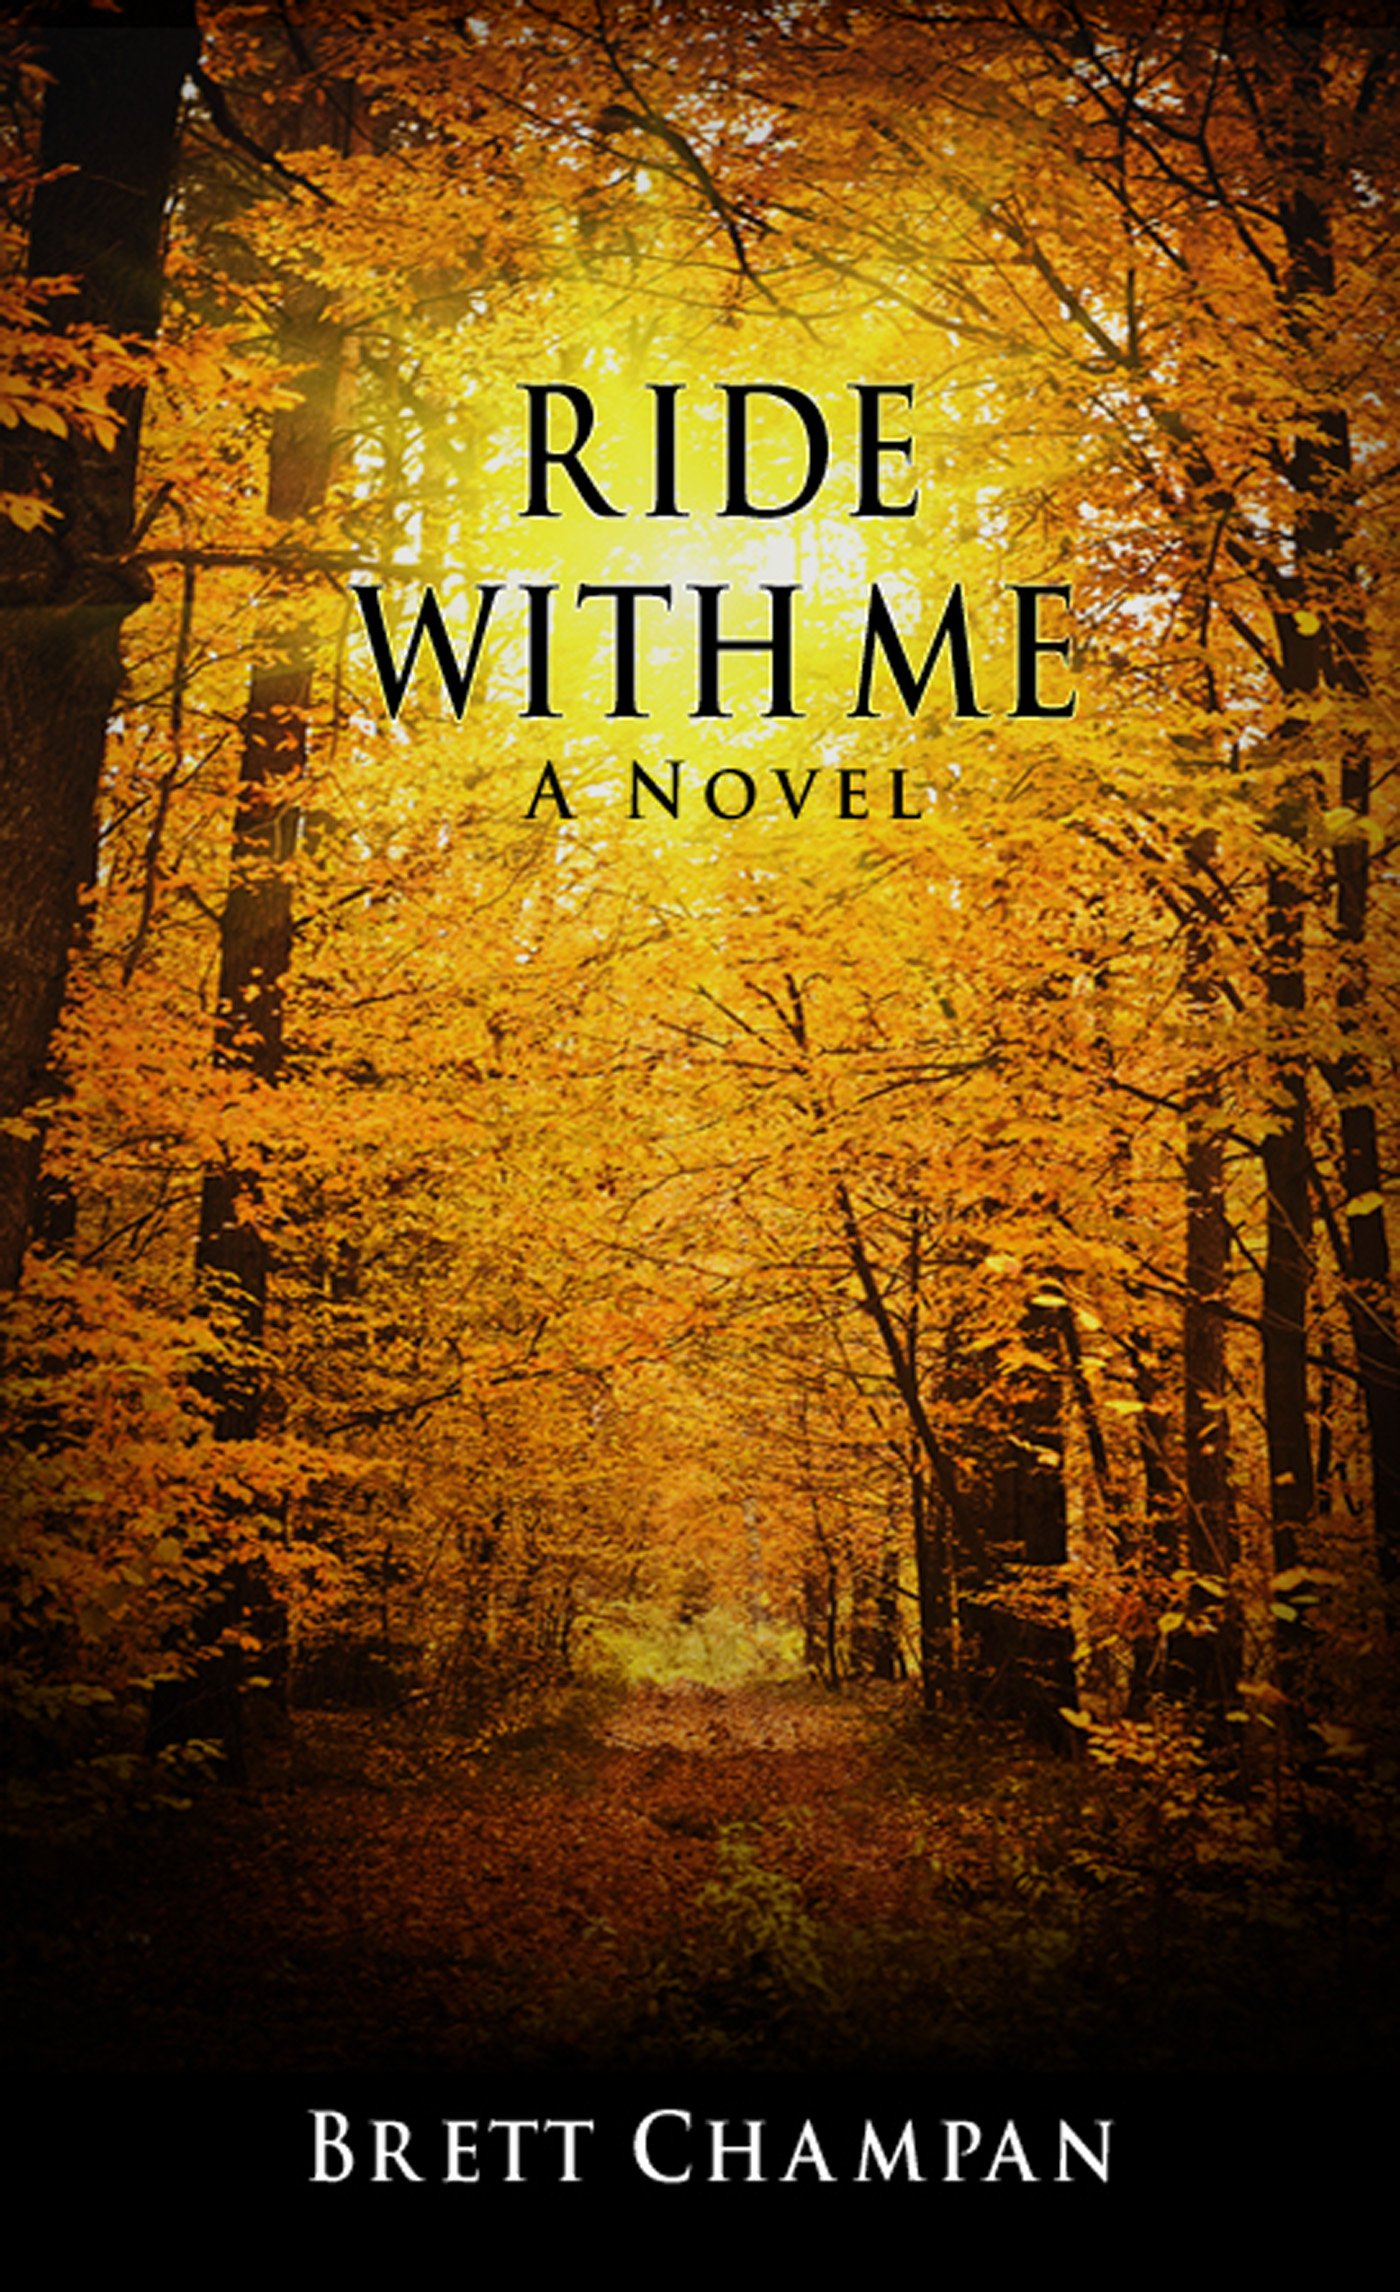 Ride Me Novel Brett Champan product image